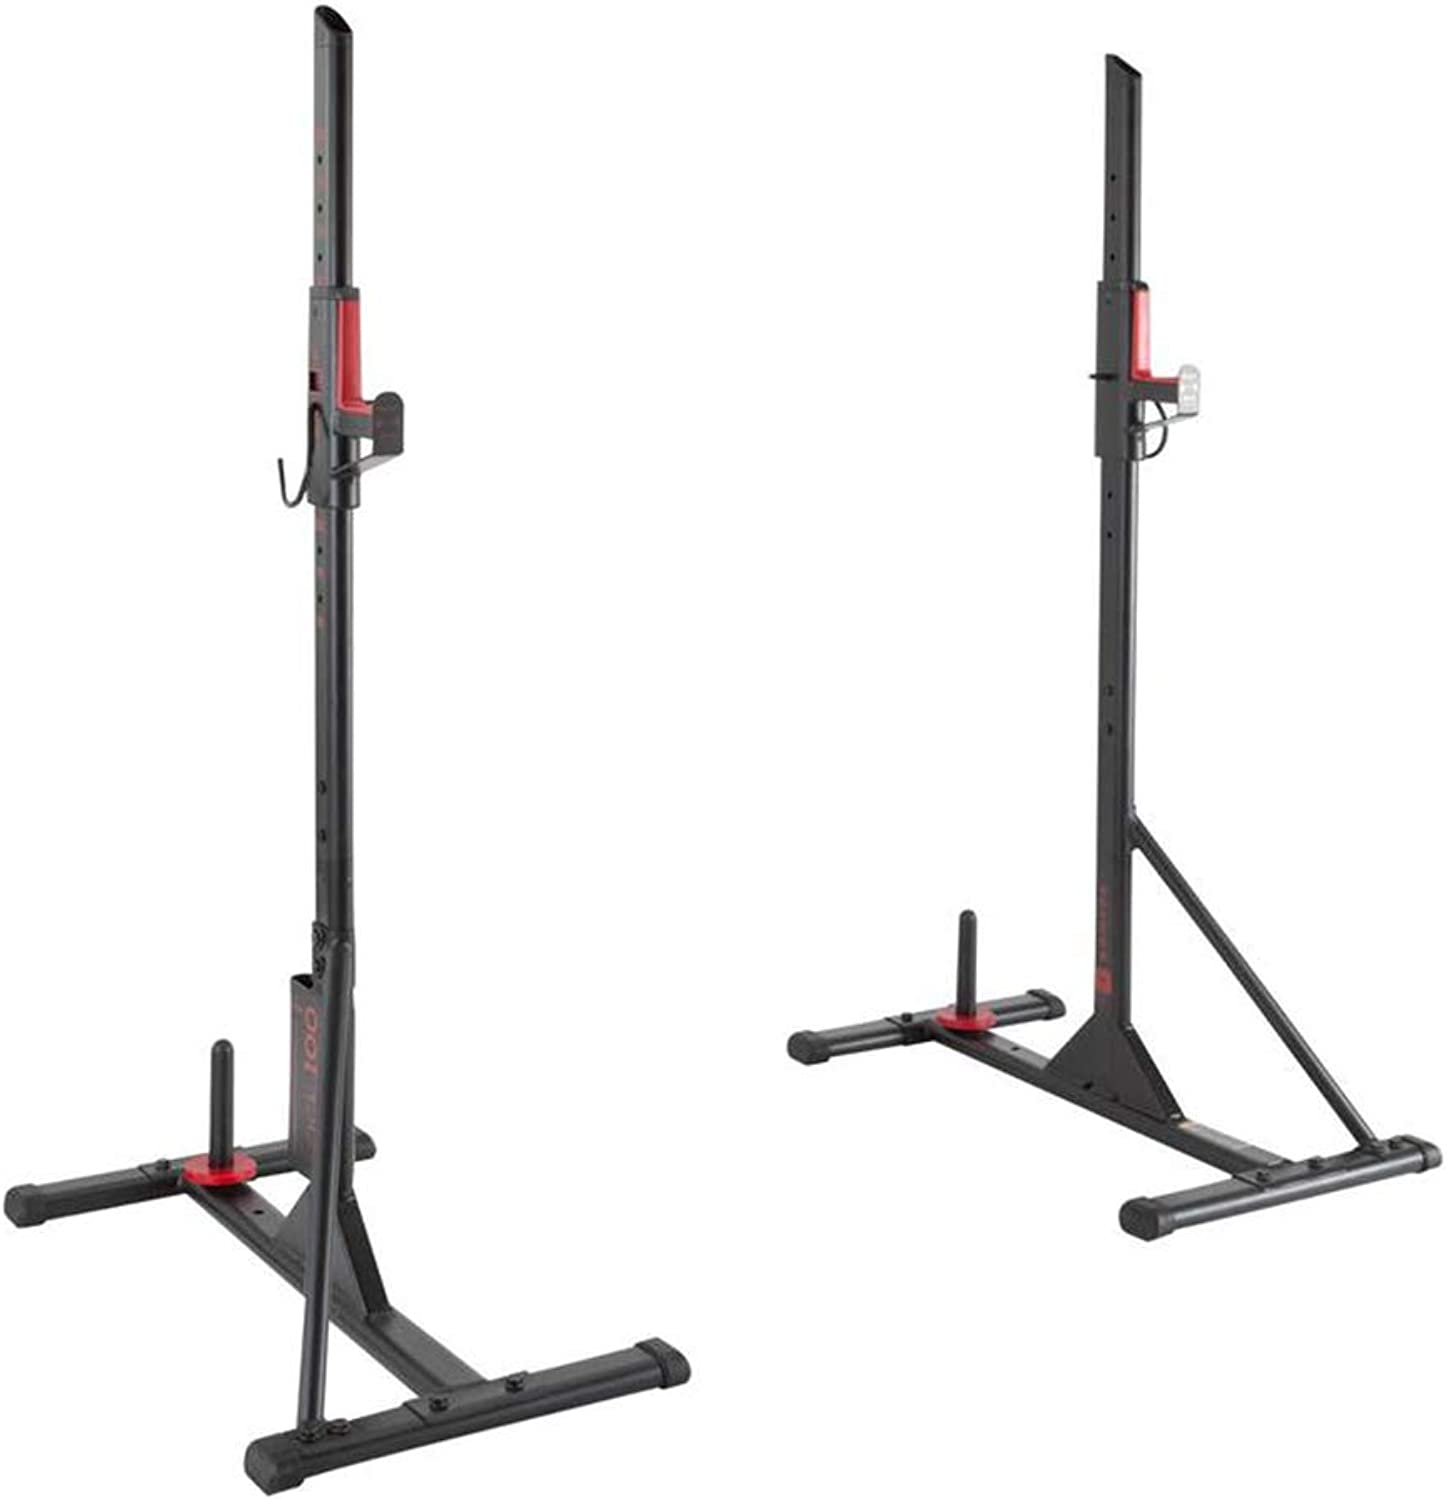 Squat Rack Barbell Rack Home Bench Squat Predection Frame MultiFunction Fitness Simple Weight Bench Frame Equipment Benches